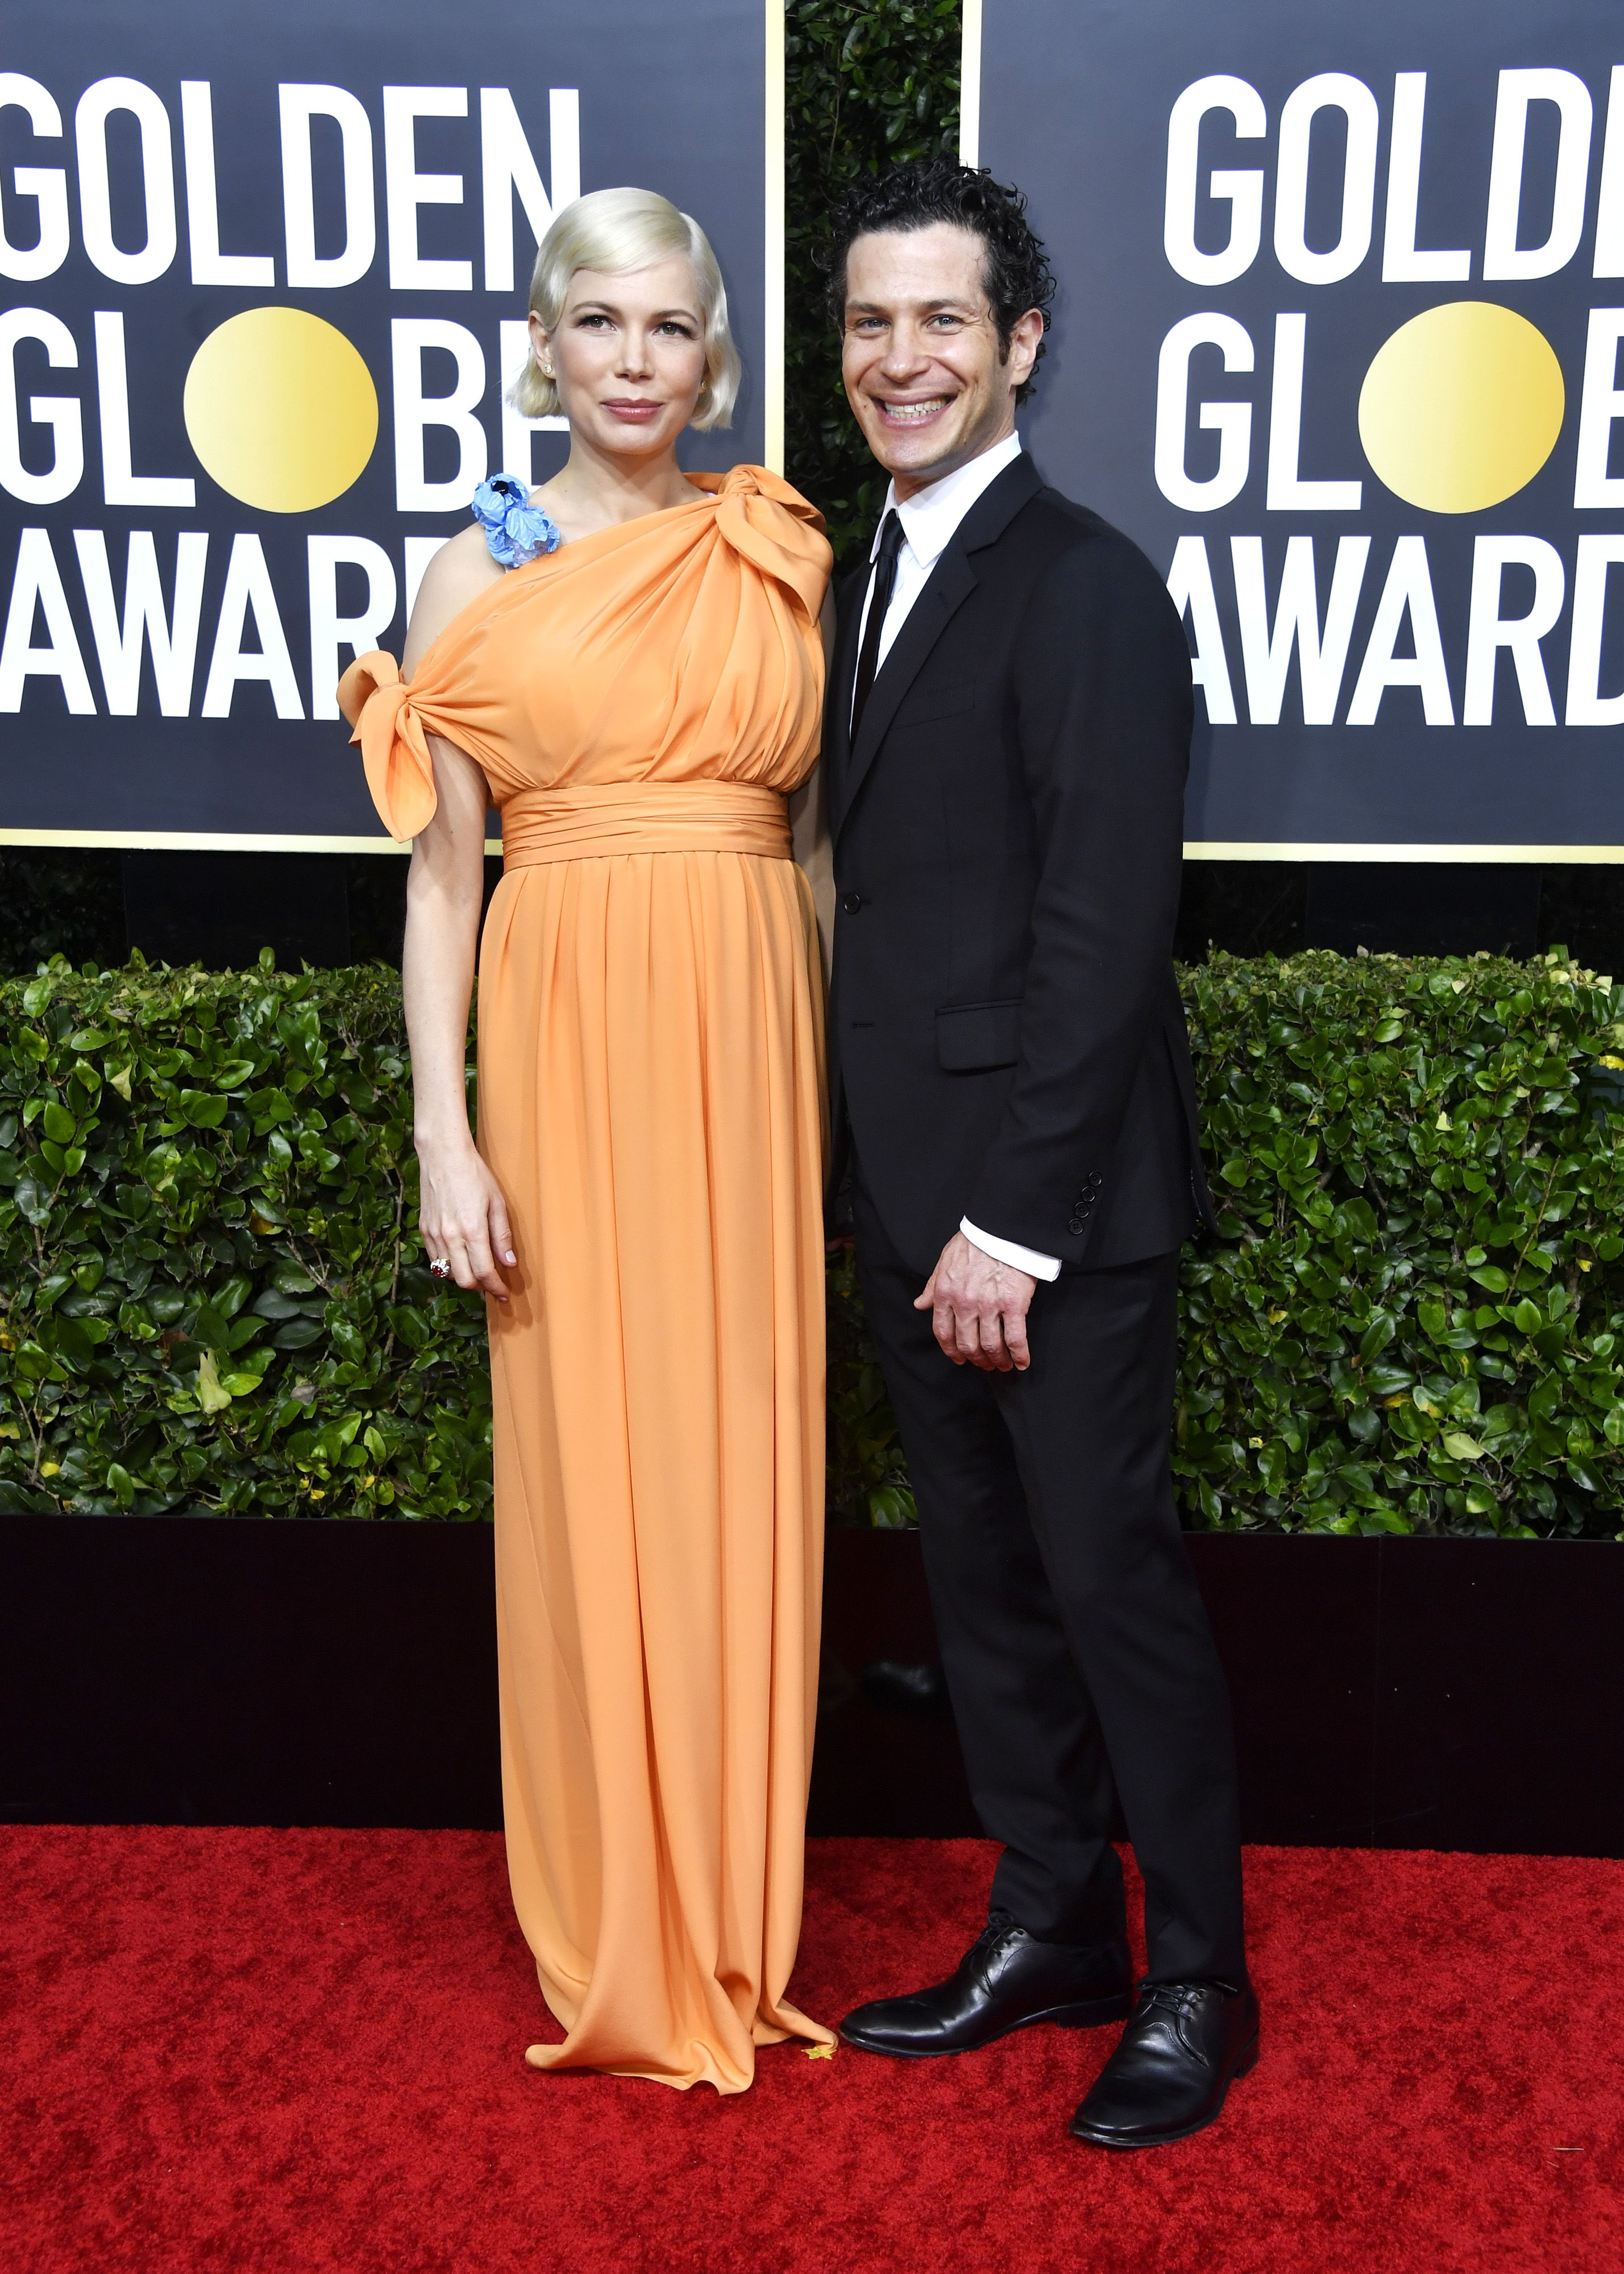 Michelle Williams Makes Her Red Carpet Debut with Her Fiancé Thomas Kail in Schlumberger Jewels